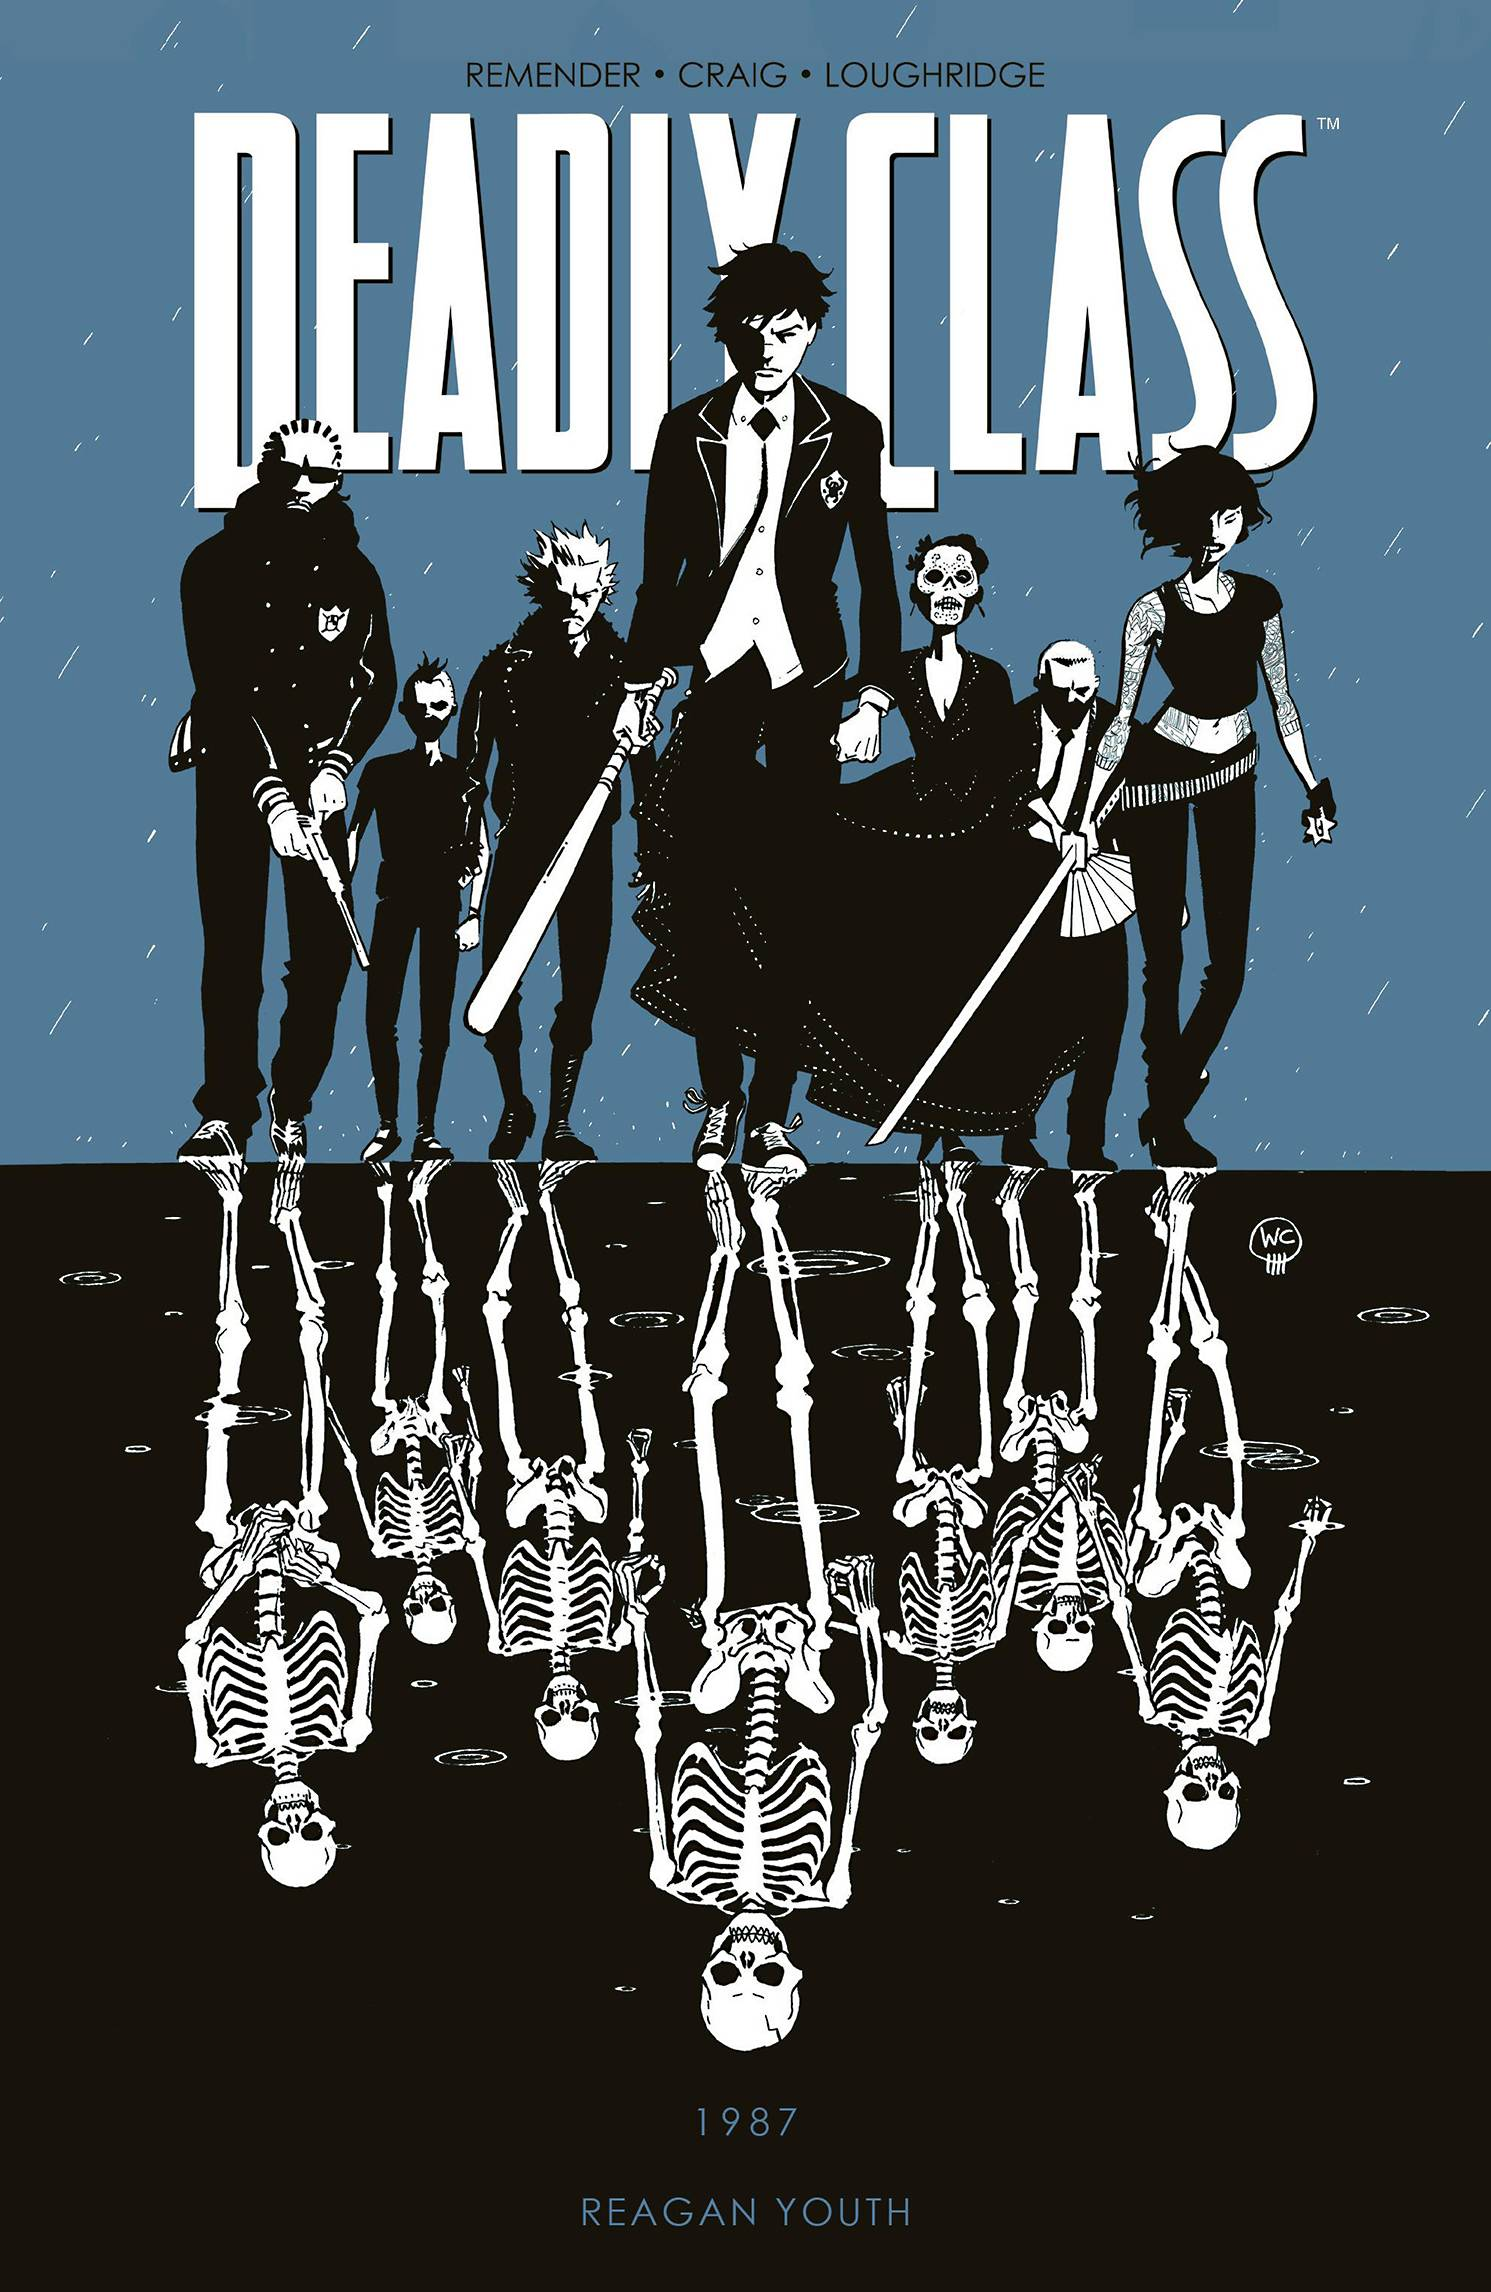 Deadly Class TP Vol 1 - Lauren's PickIt's 1987 and things are not looking awesome for Marcus Lopez Arguello. He's homeless, his parents are dead, and as if things weren't bad enough someone just stole his shoes. If there's one thing he really doesn't need, it's lessons on how to kill people. But that's exactly what he's going to get! Rick Remender (Captain America, Black Science) is in his element channeling his own punk-rock adolescence with admirable assist by artist Wes Craig (Blackhand Comics). However, colorist Lee Loughridge (Wolf) remains the true MVP of this creative team, providing color schemes dramatic enough to match the events of this wild ride.